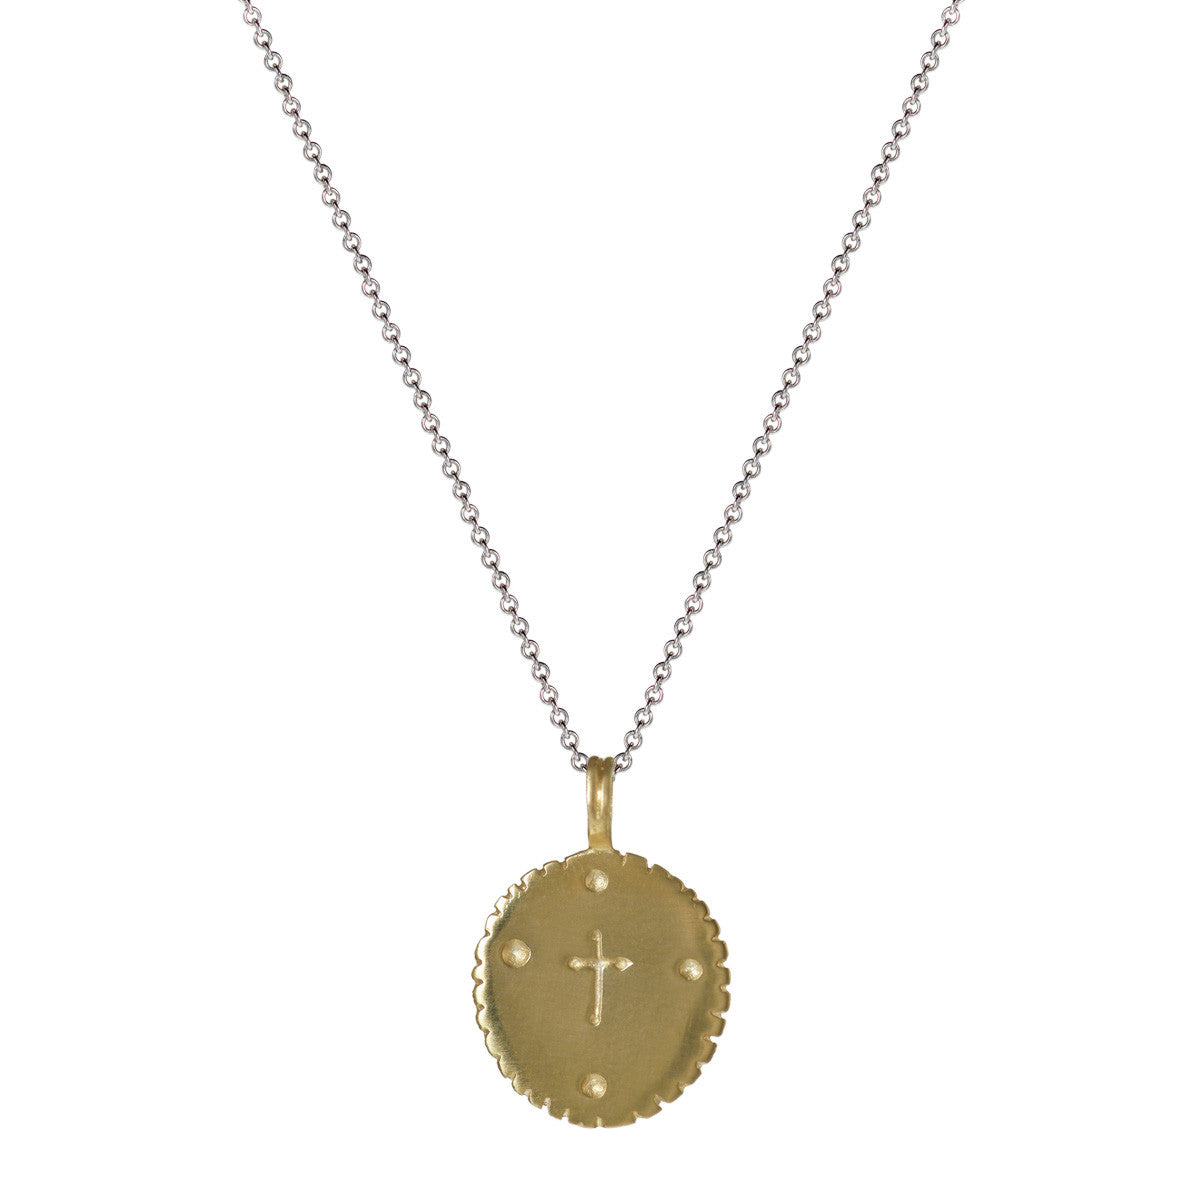 Men's Sterling Silver & 10K Gold Thin Cross Pendant